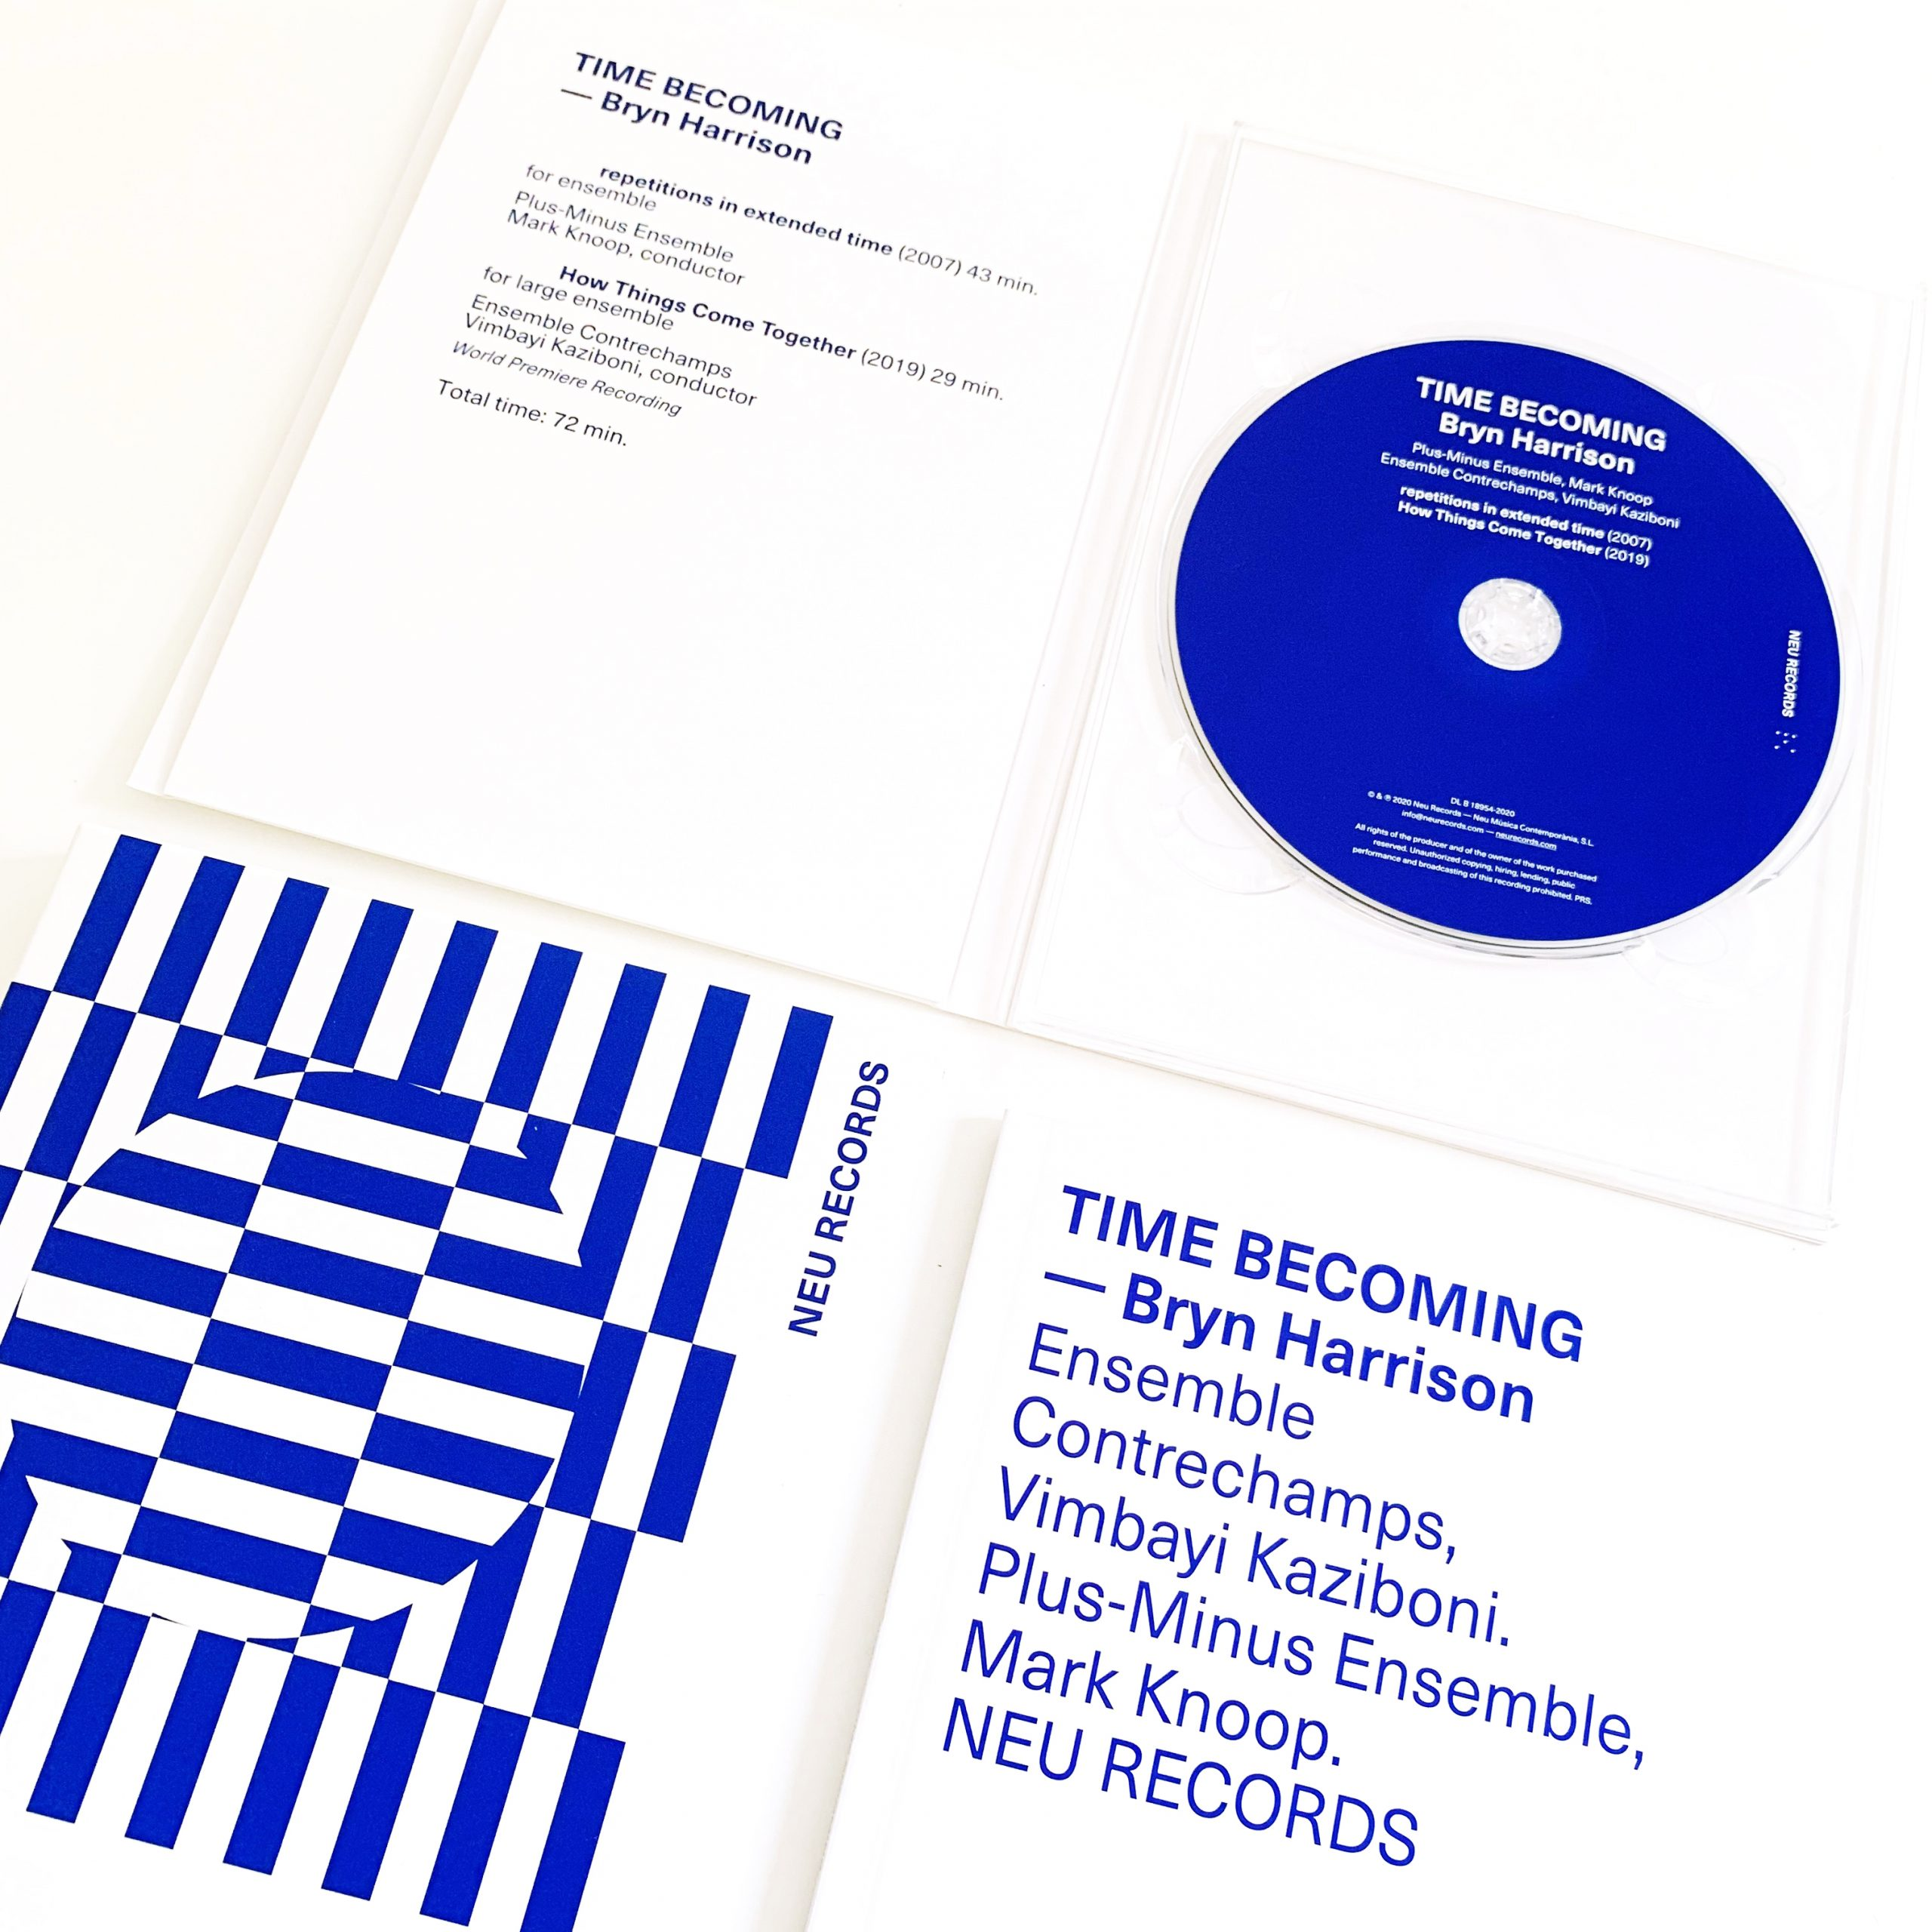 Bryn Harrison - Time Becoming - CD inside